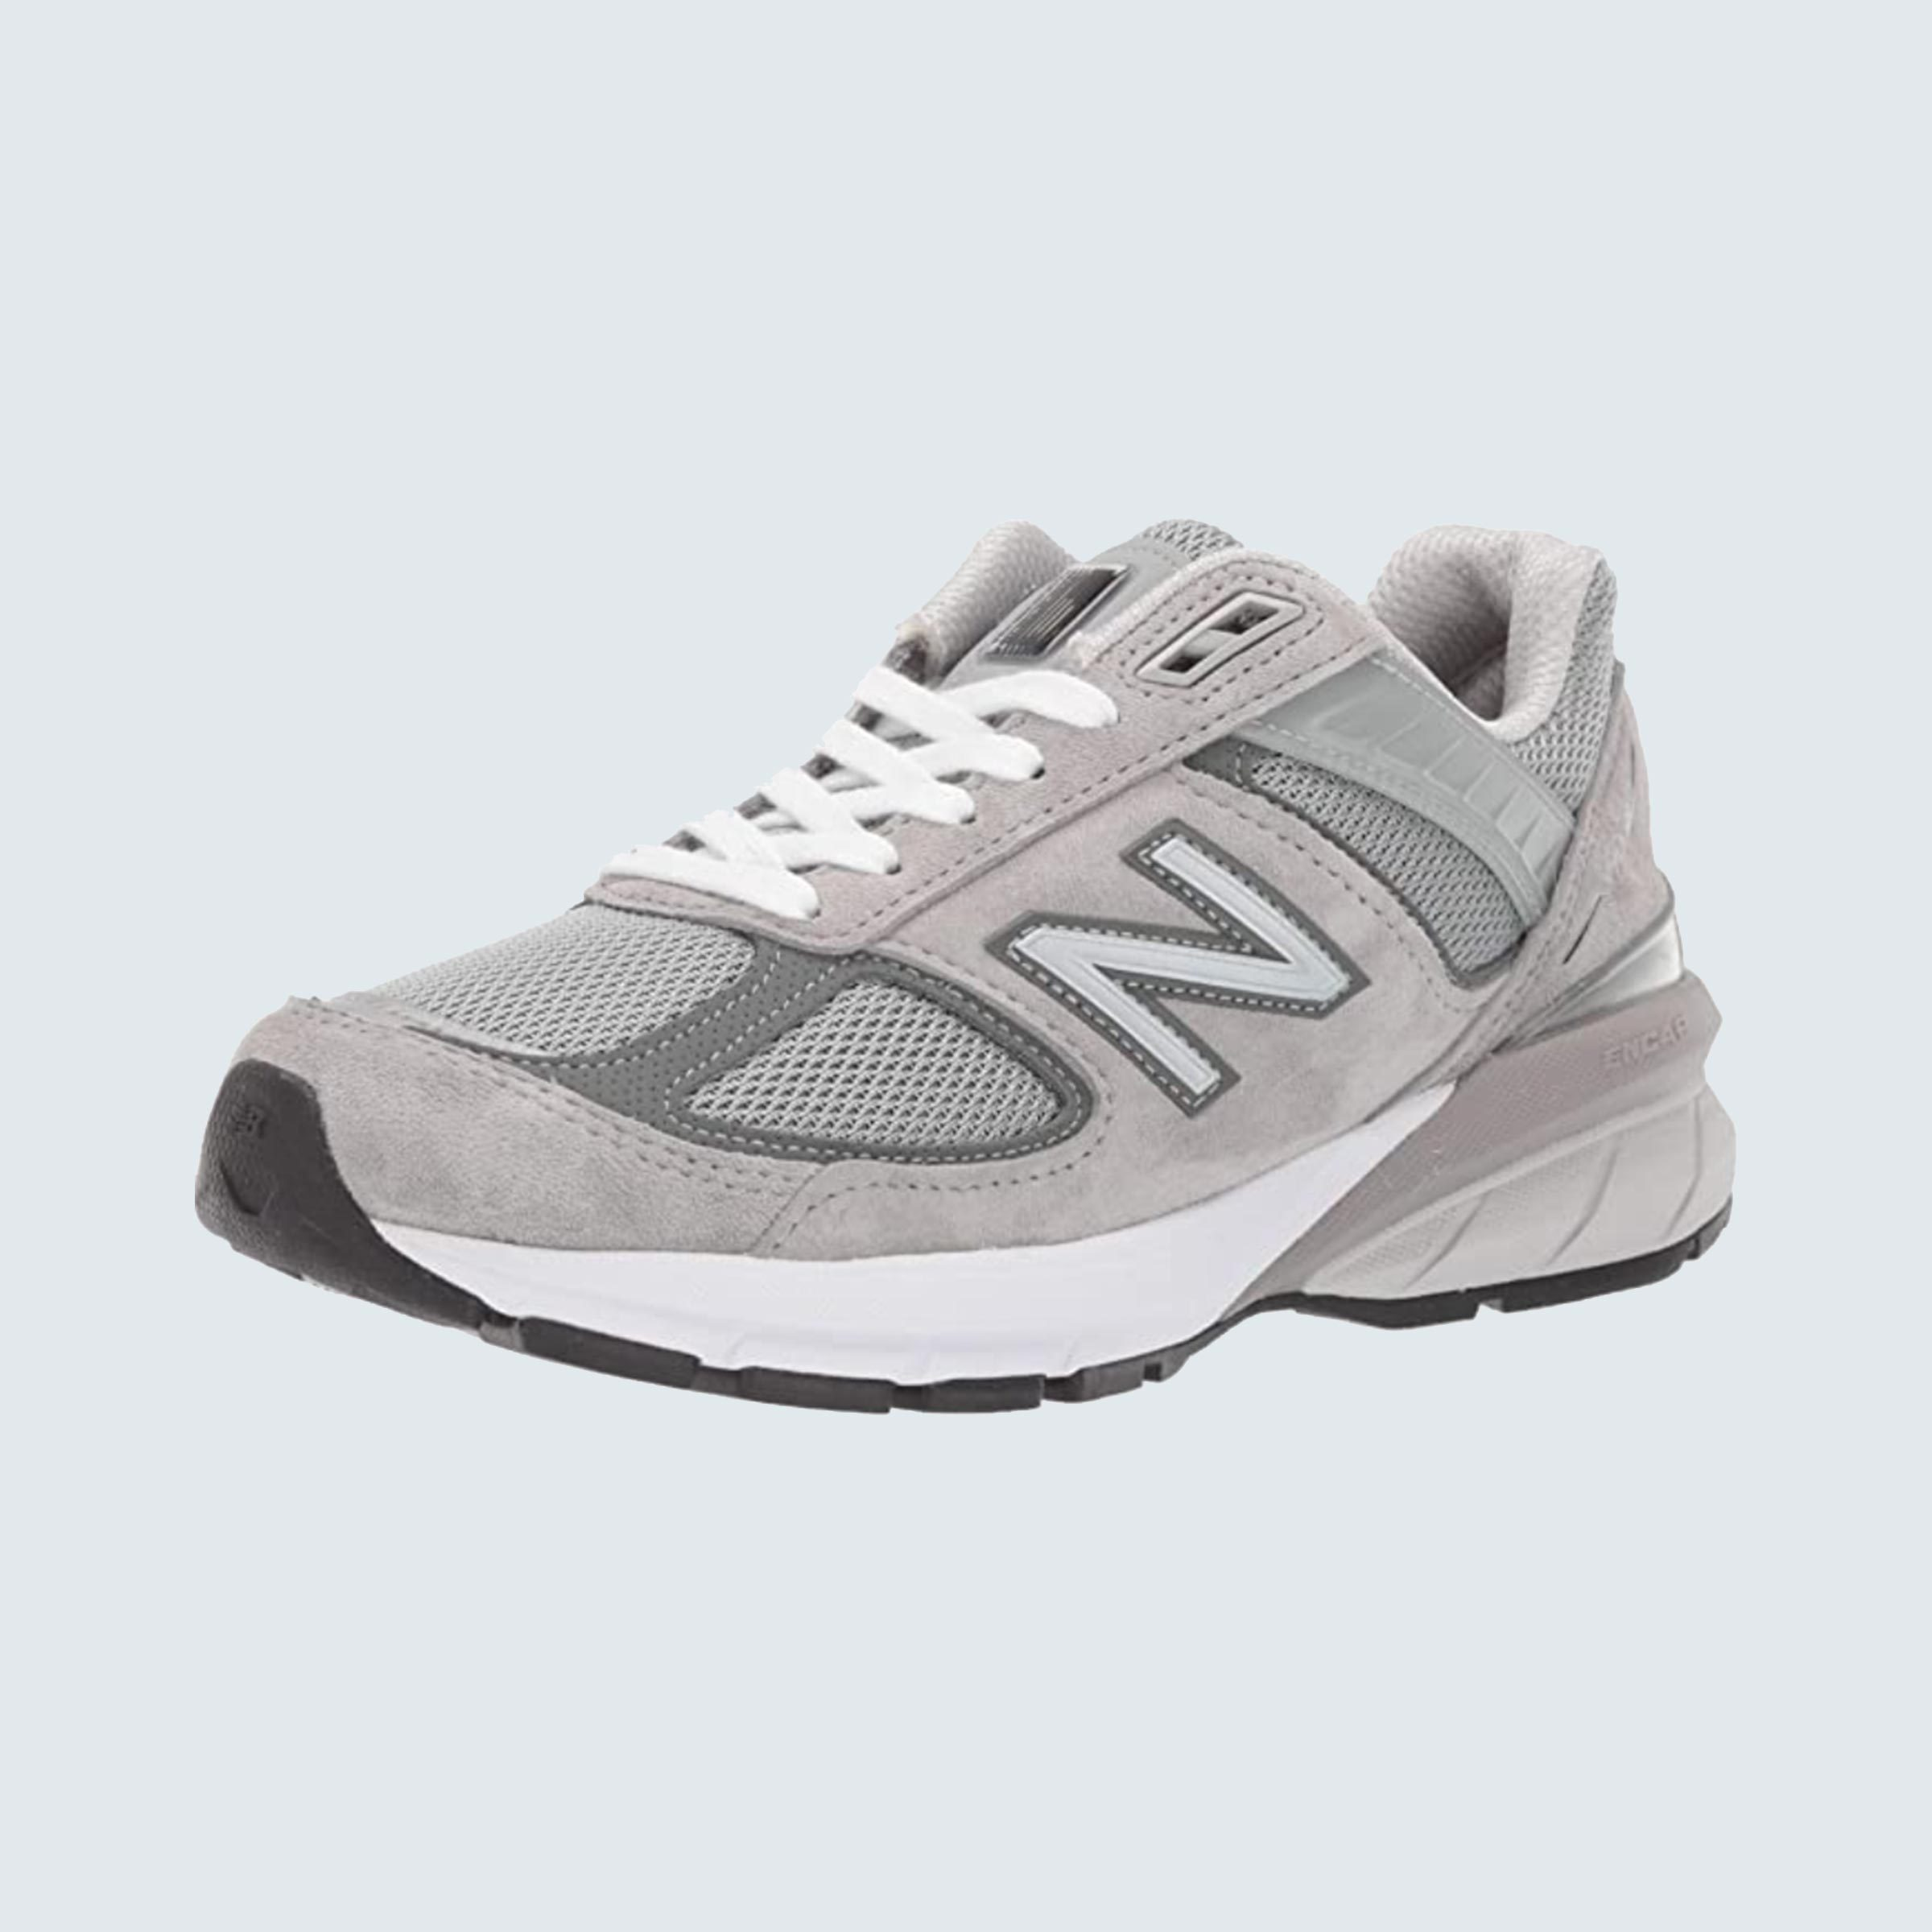 New Balance Made in America Line